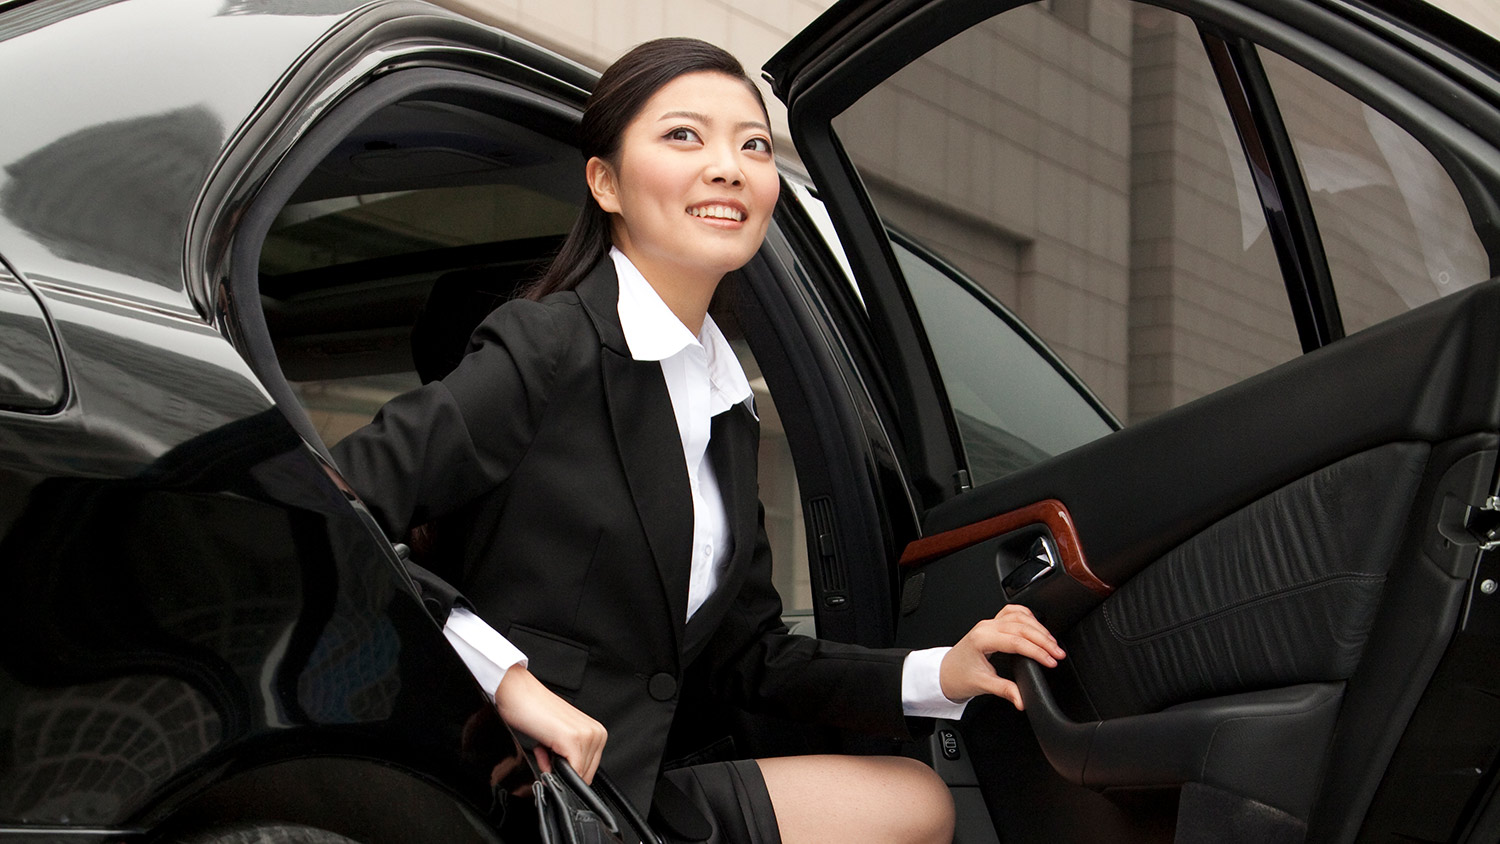 Businesswoman exiting her chauffeured car.